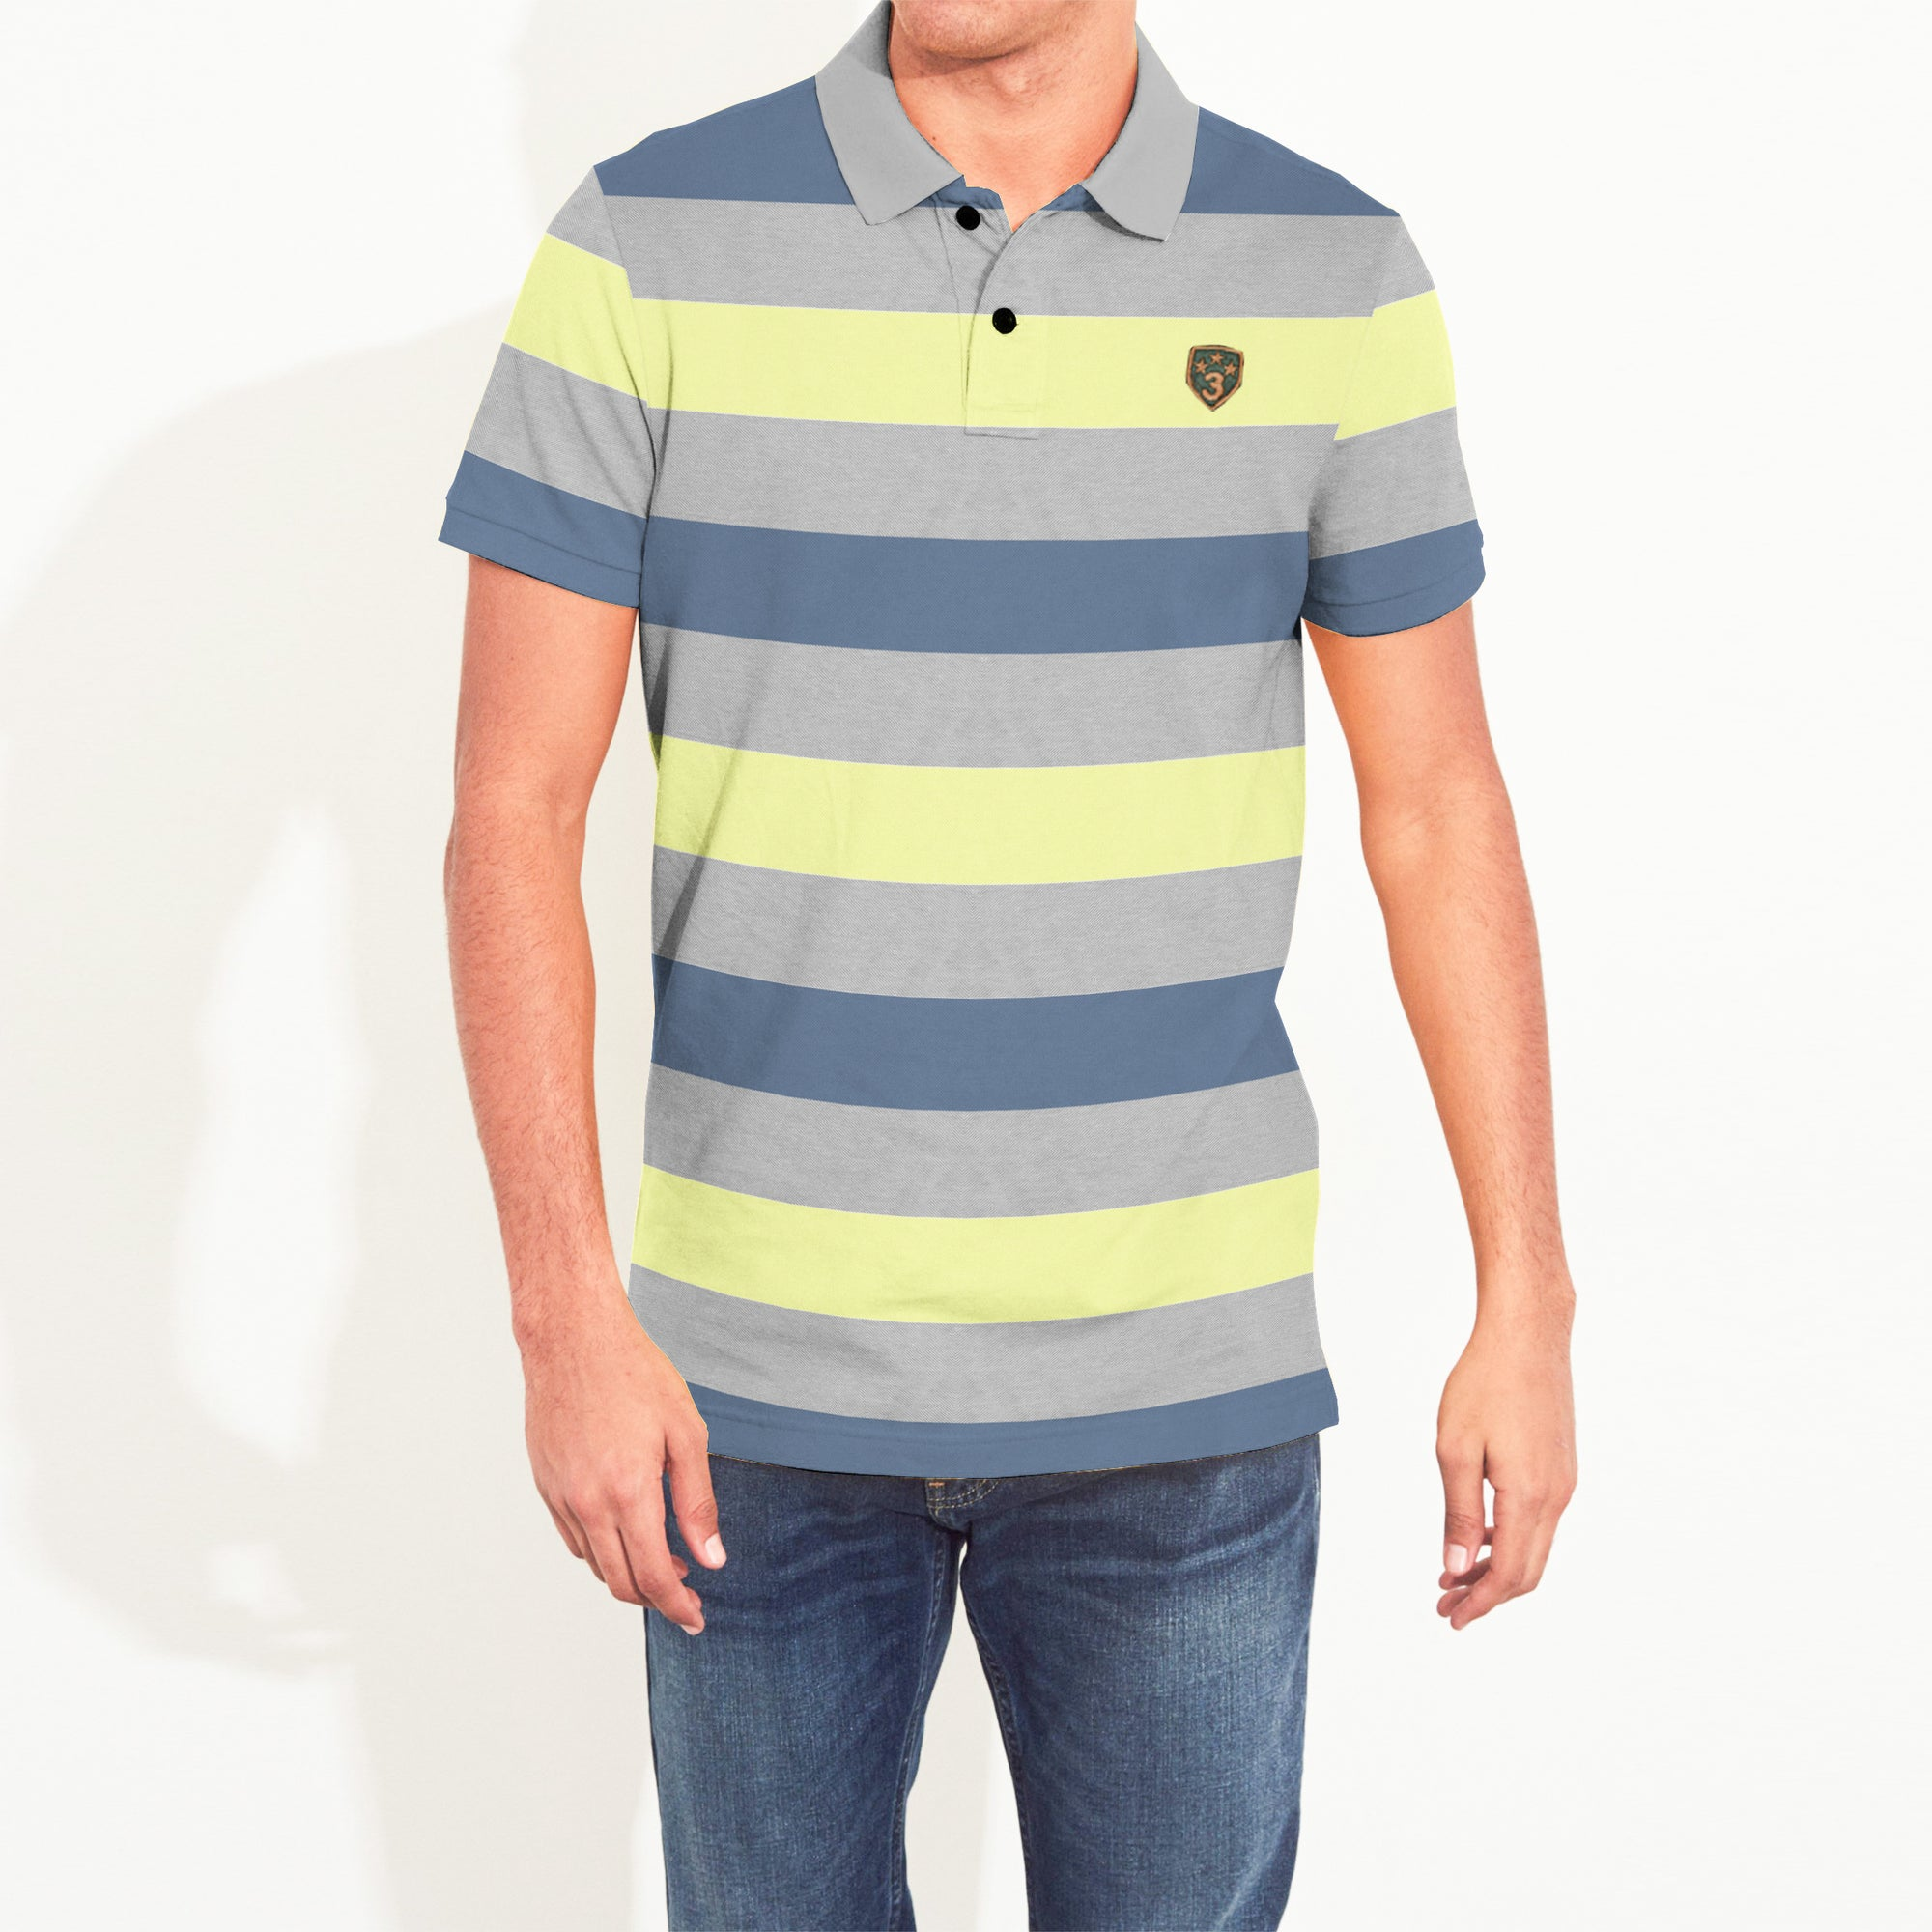 Banana Republic Short Sleeve P.Q Polo Shirt For Men-Multi Striper-NA8115